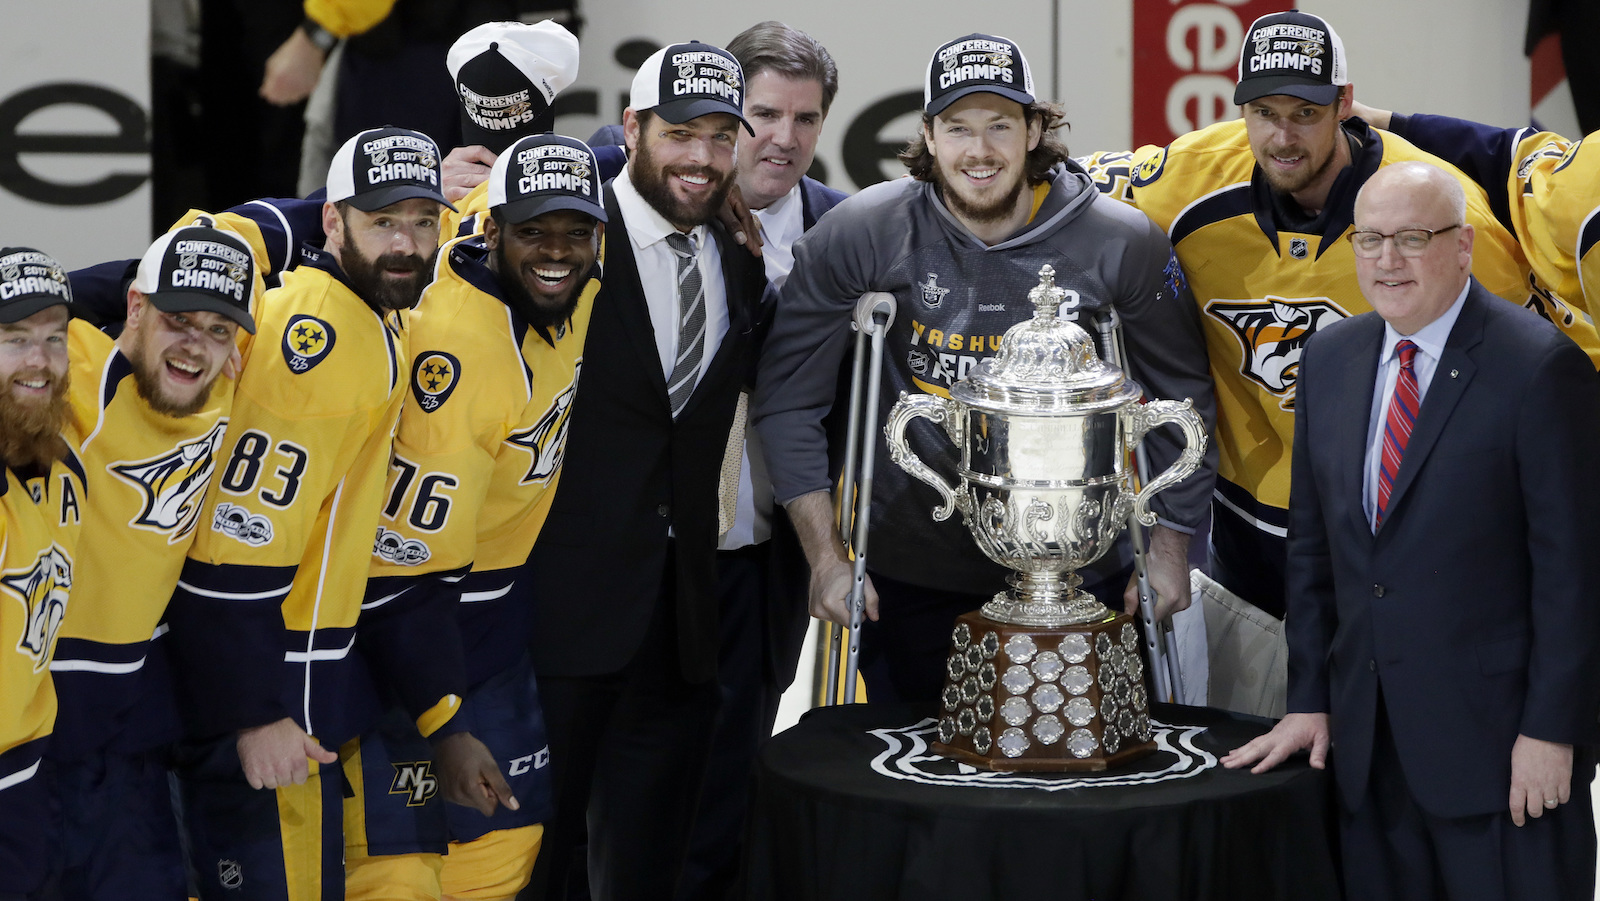 NHL Deputy Commissioner Bill Daly, right, presents the Clarence S. Campbell Bowl to the Nashville Predators after the Predators beat the Anaheim Ducks in Game 6 of the Western Conference final in the NHL hockey Stanley Cup playoffs Monday, May 22, 2017, in Nashville, Tenn. The Predators won 6-3 to win the series 4-2 and advance to the Stanley Cup Finals. (AP Photo/Mark Humphrey)